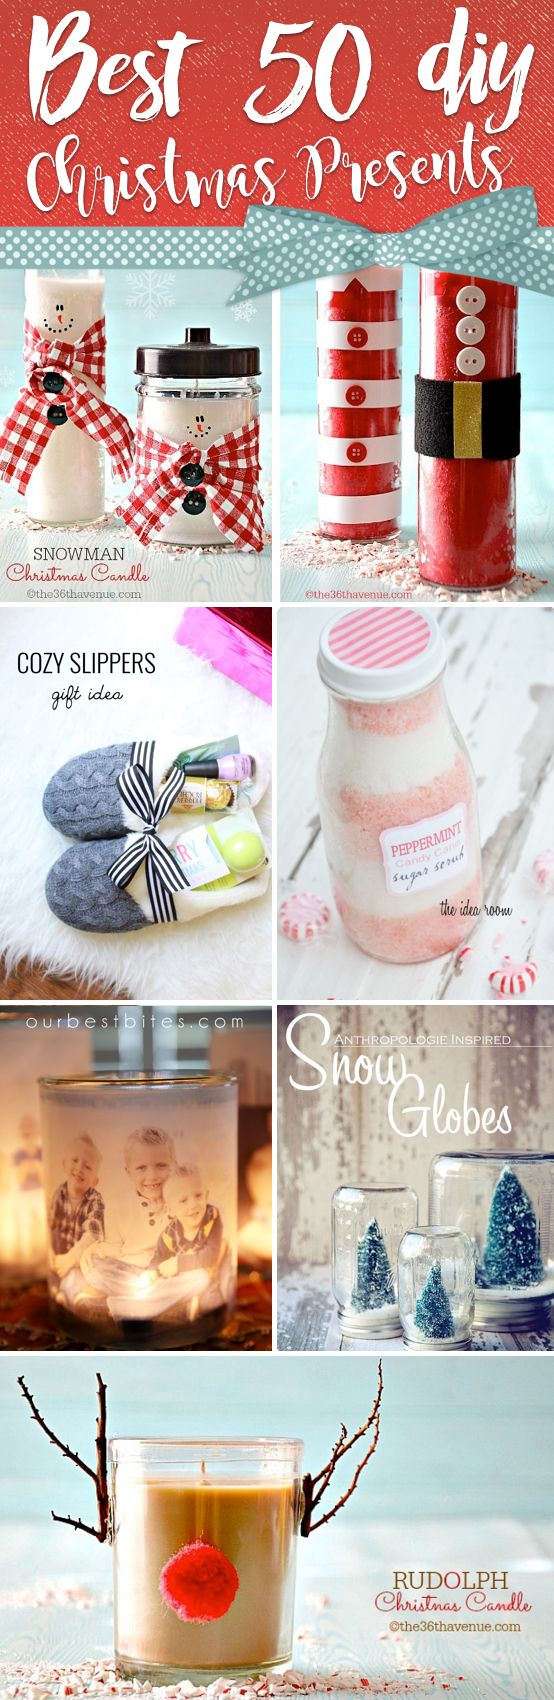 50 DIY Christmas Presents Reminding Your Loved Ones Of You For ...